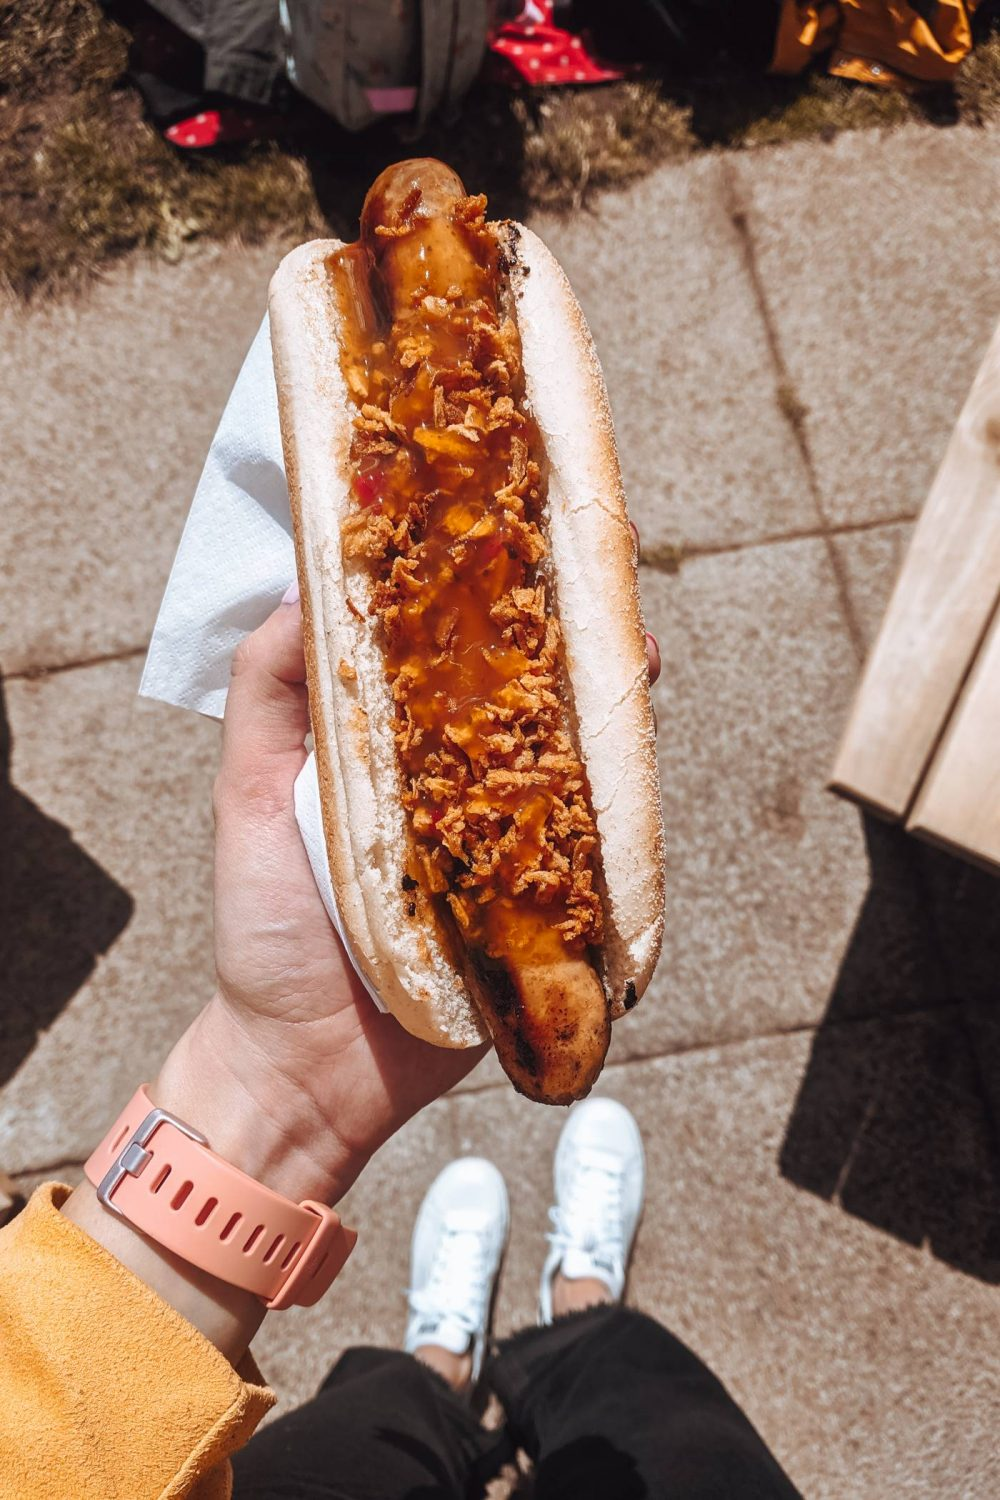 Jamaican Jerk hot dog topped with sauce and crispy onions by SIzzlers Street Food Milton Keynes